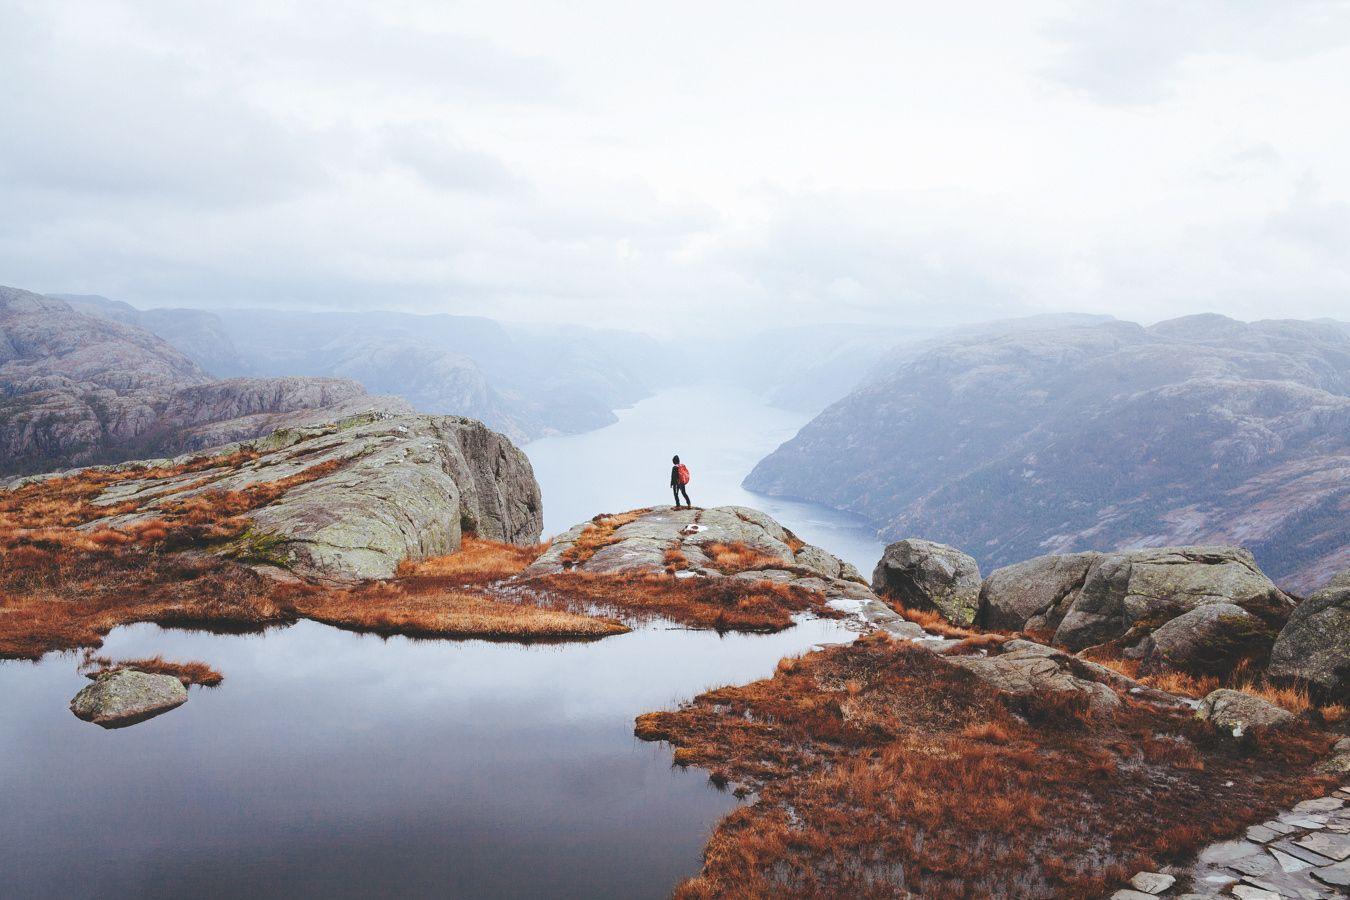 Minimal People in Landscapes - Photos Curated by 500px - 500px